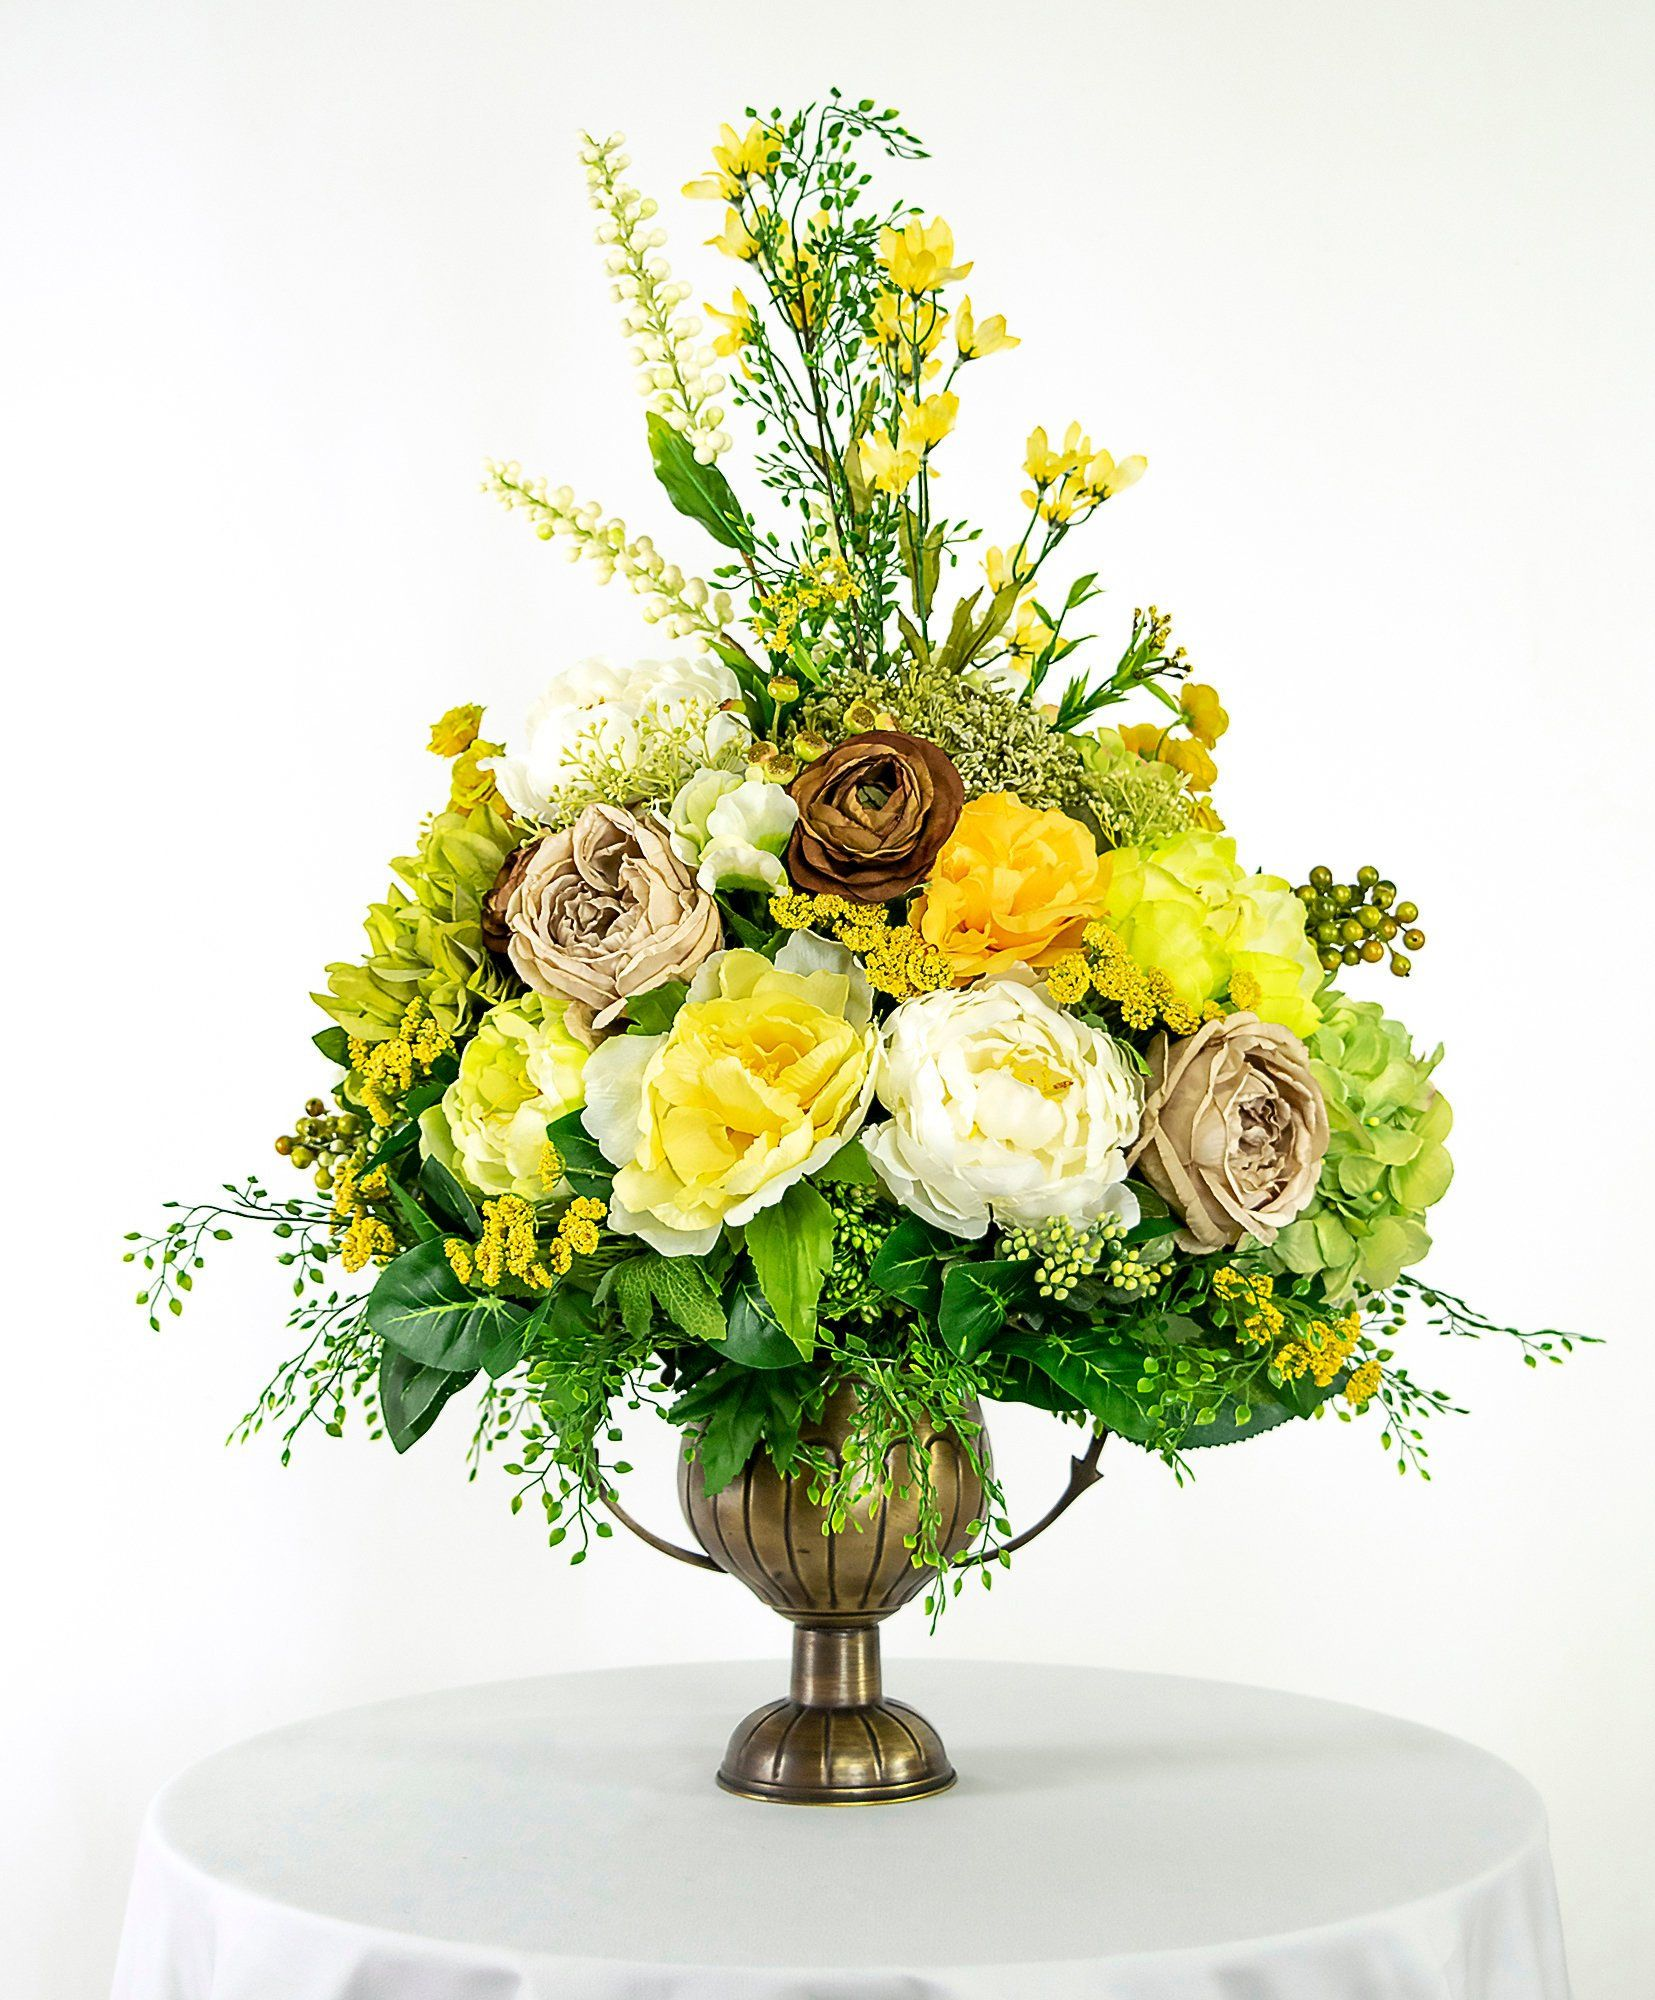 Artificial Flower Arrangement With Yellow Green And Brown Peonies Roses And Hydrangea Silk Floral Home Decor Beautiful Gift Luxury Artificial Flower Arrangements Flower Arrangements Large Flower Arrangements